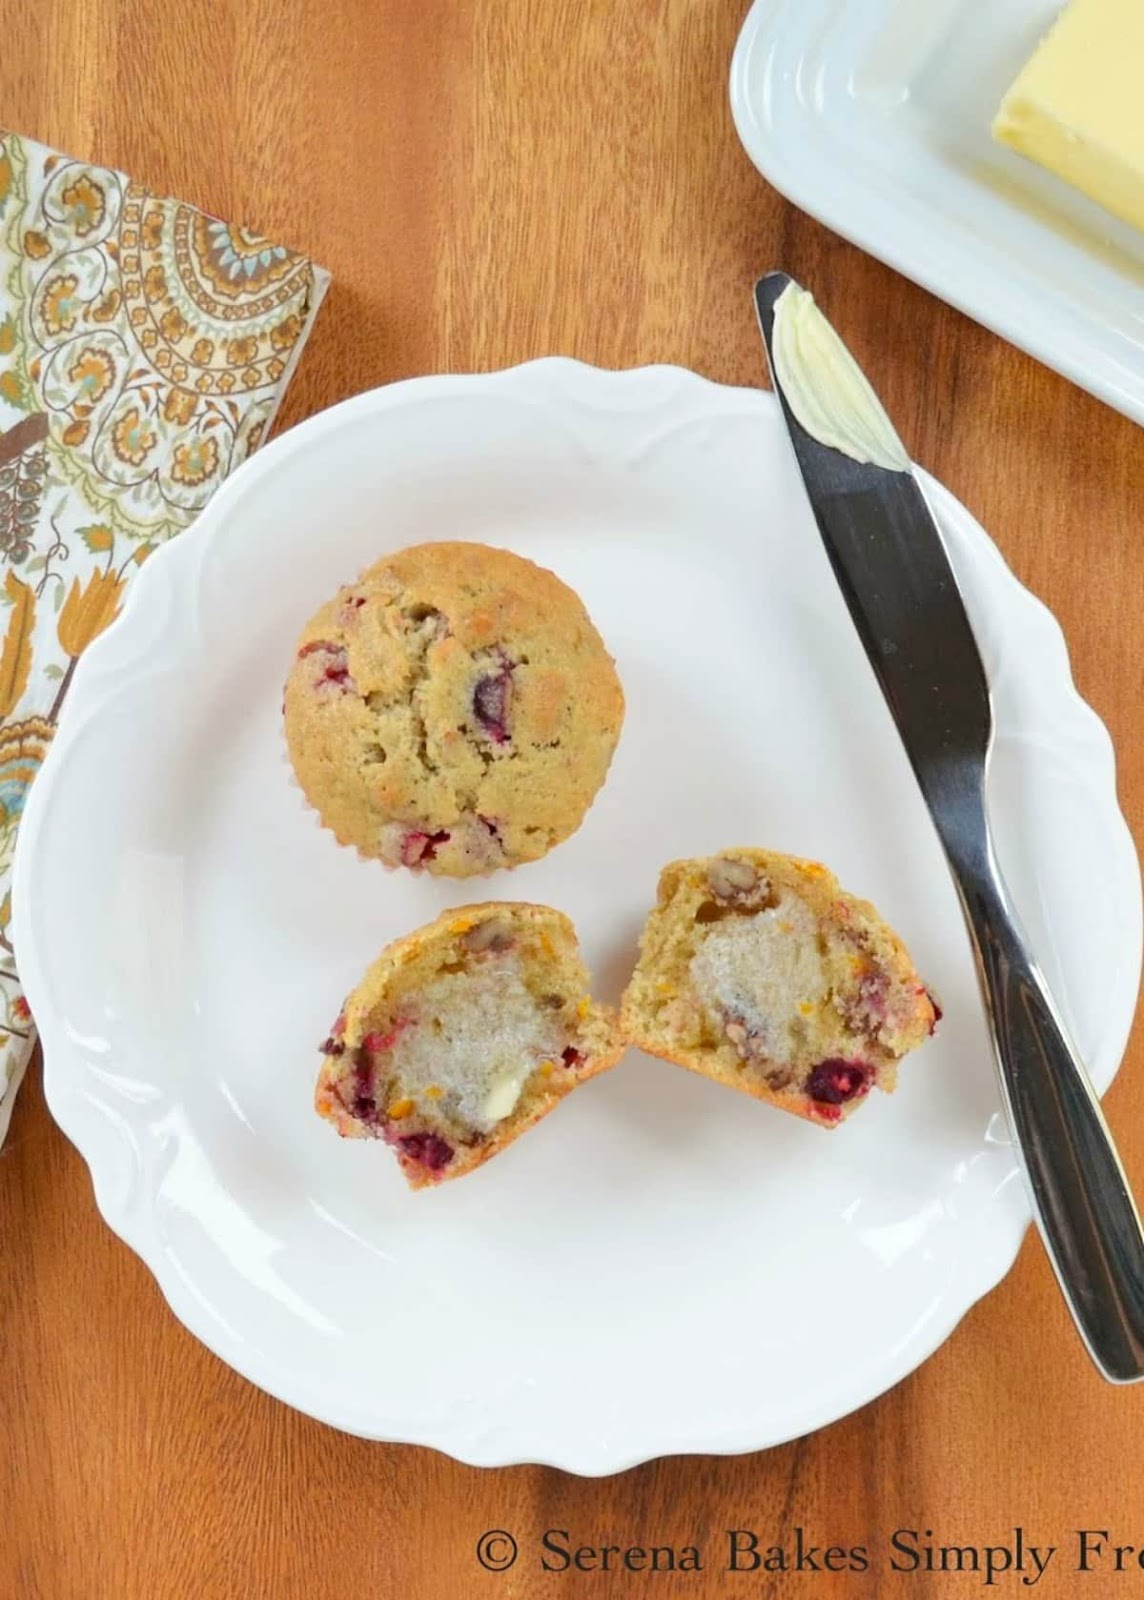 Orange Cranberry Muffins from scratch are tender and moist with plenty of juicy cranberries and orange flavor. These are a holiday favorite recipe for Christmas breakfast or brunch from Serena Bakes Simply From Scratch.